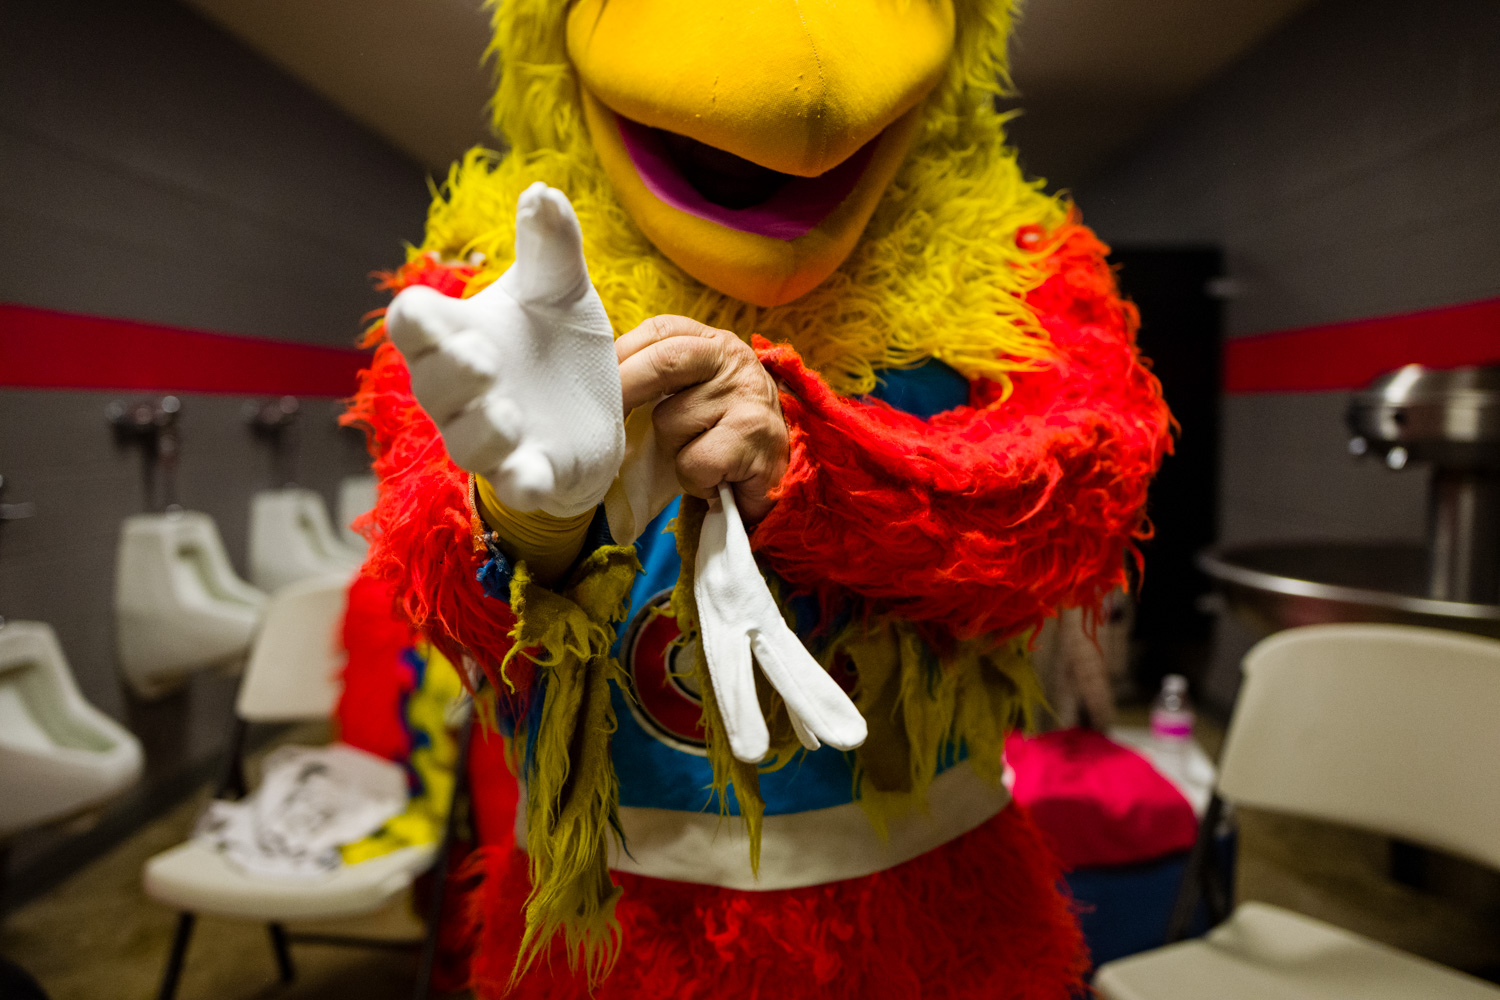 Riding the Laughter Into Another Sunset, The San Diego Chicken,  The New York Times